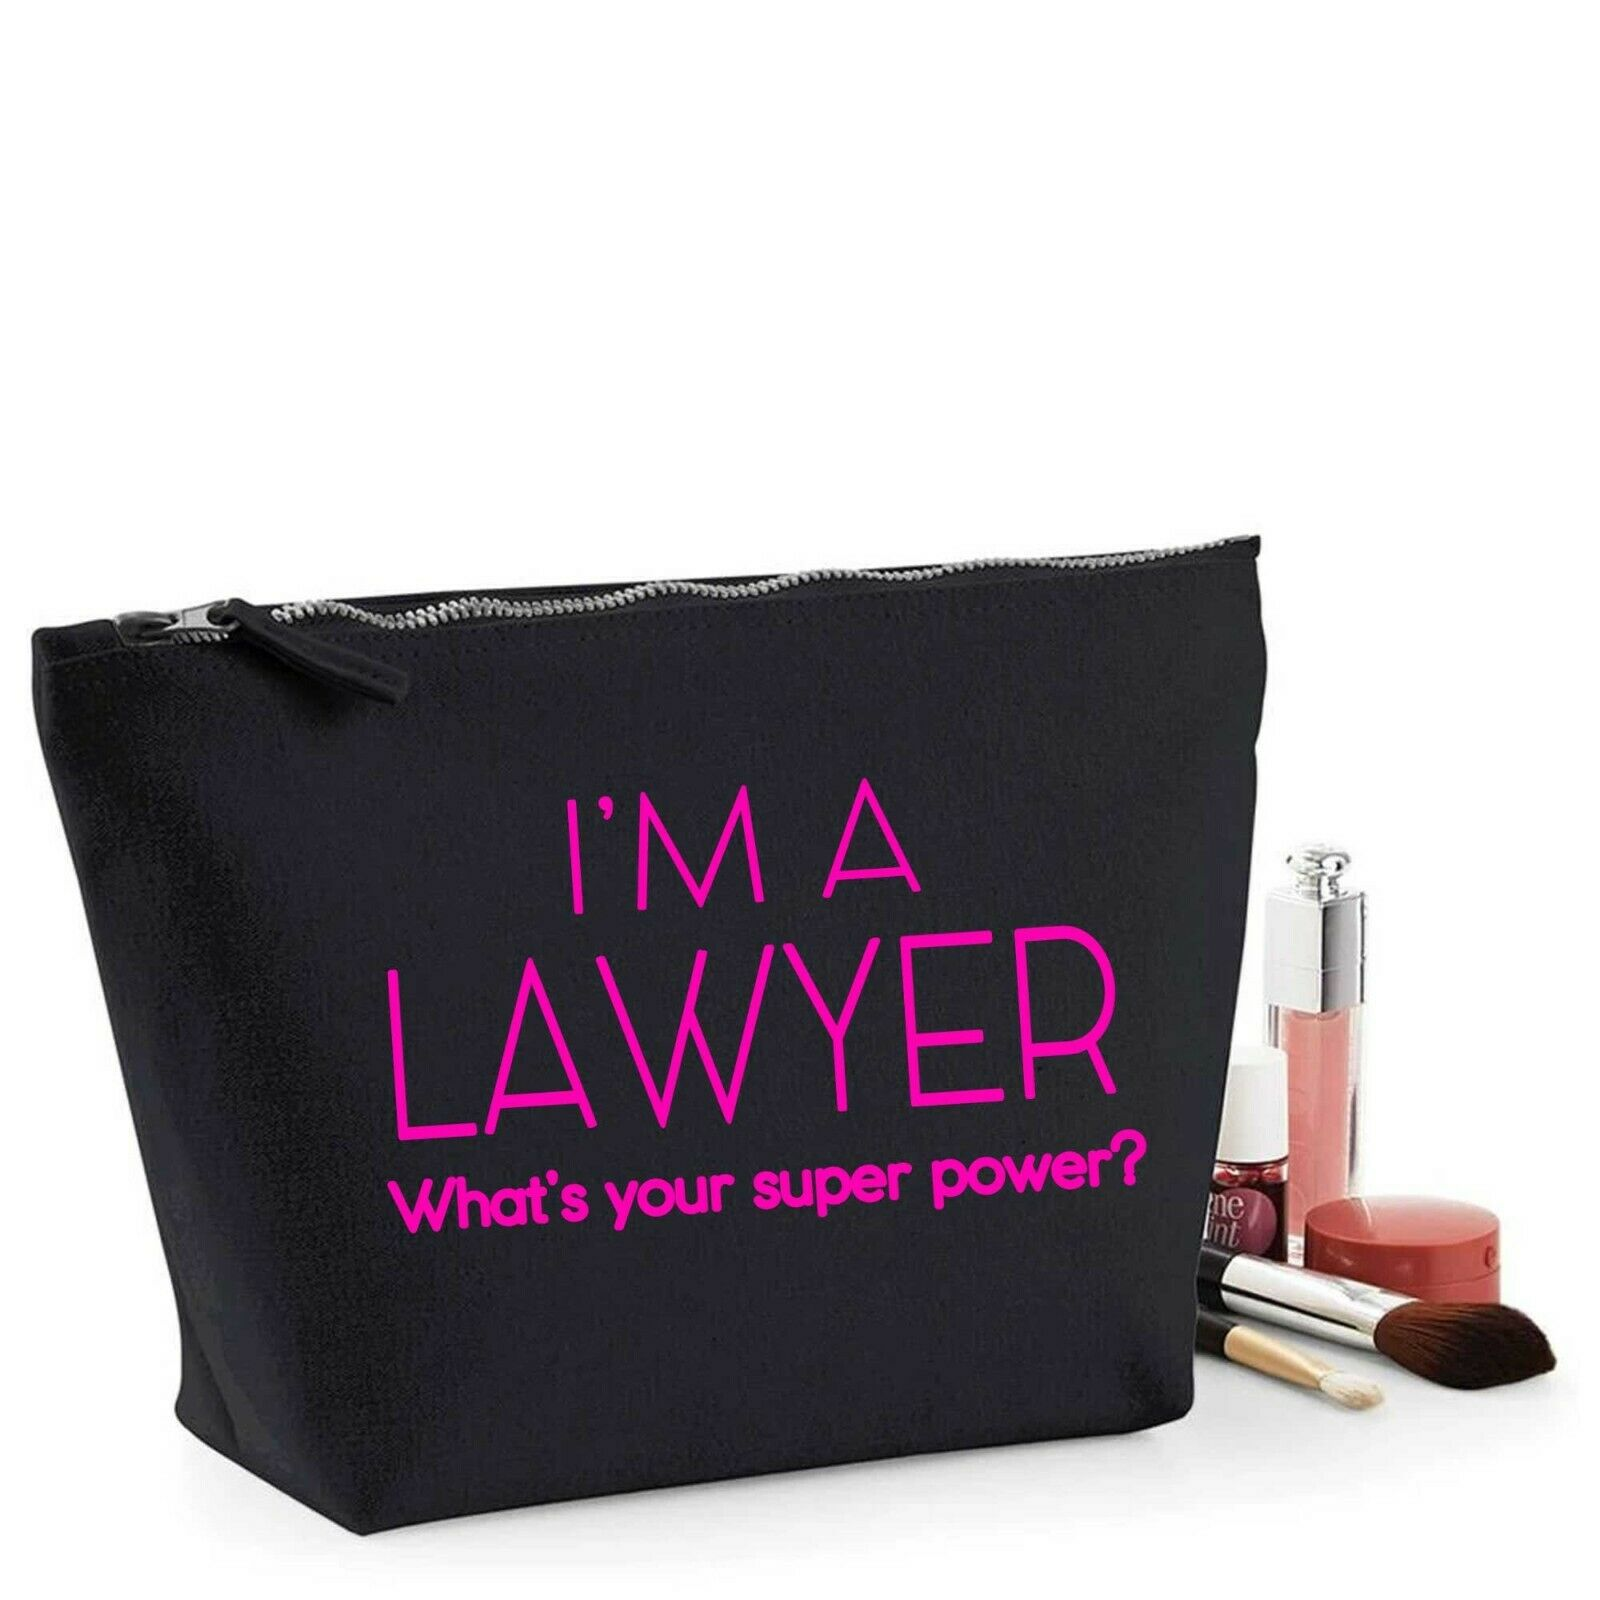 Lawyer Thank You Gift Women's Make Up Makeup Accessory Bag Pink Print